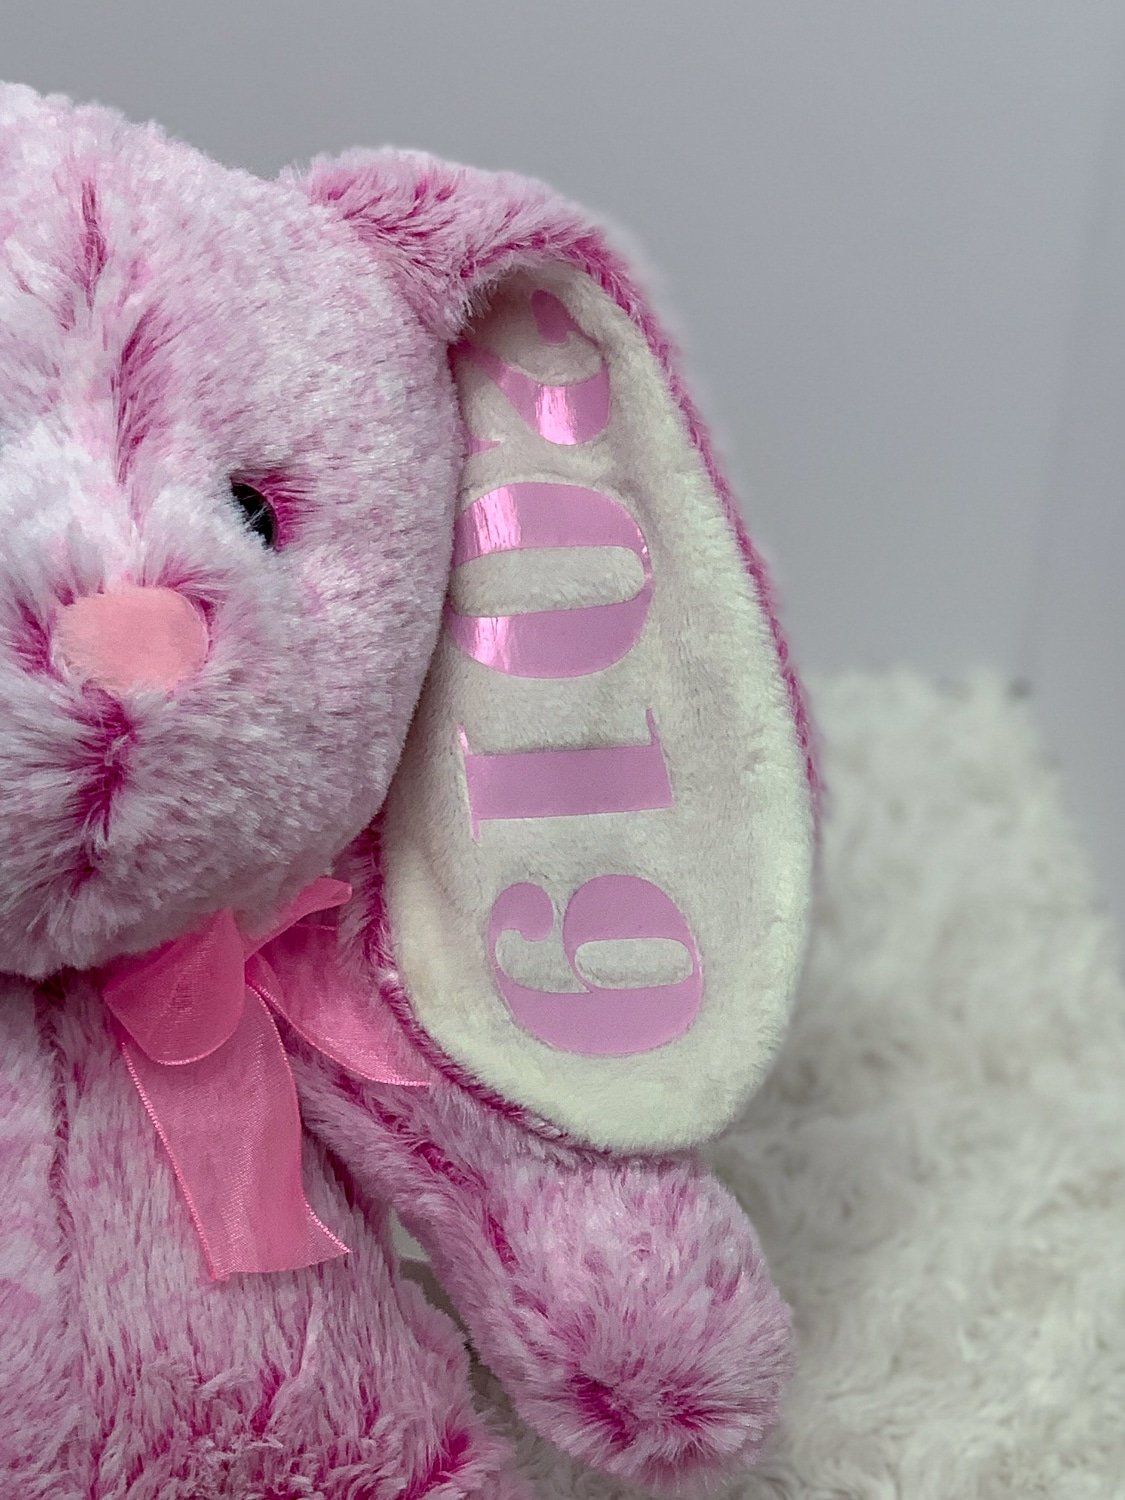 Learn to make a super cute Easter Bunny Keepsake with this easy Cricut Tutorial. This stuffed easter bunny is a great addition to any baby's Easter basket. #easter #eastercrafts #cricut #cricutmade #easycrafts #easydiy #baby